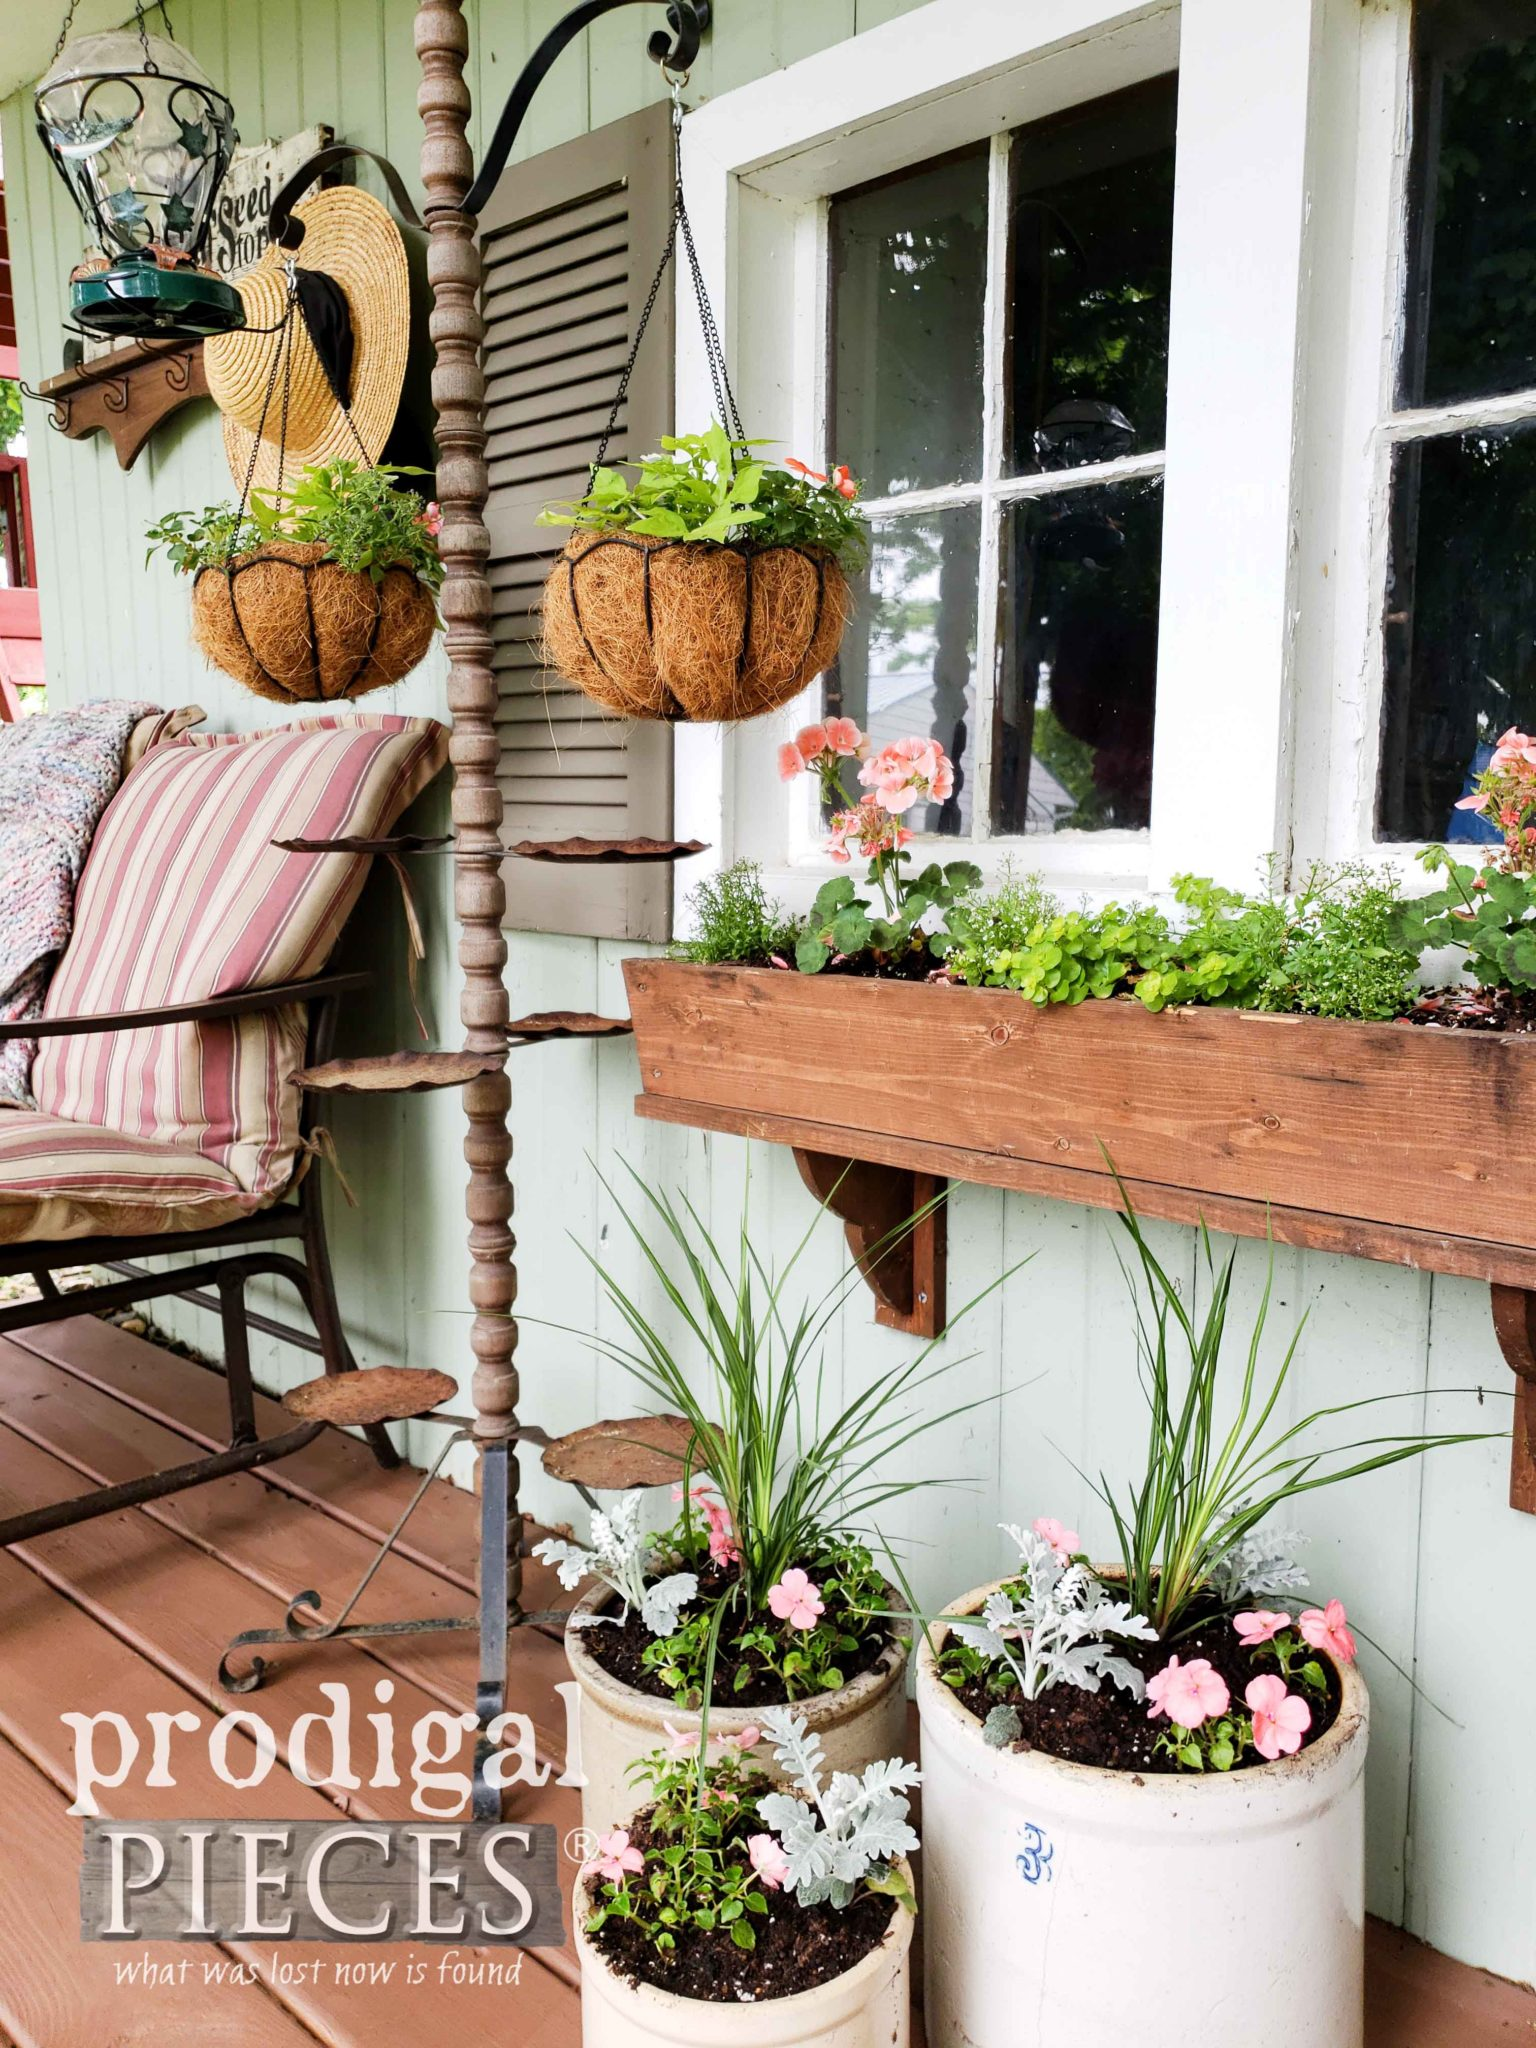 Upcycled Spring Garden Shed Decor by Larissa of Prodigal Pieces | prodigalpieces.com